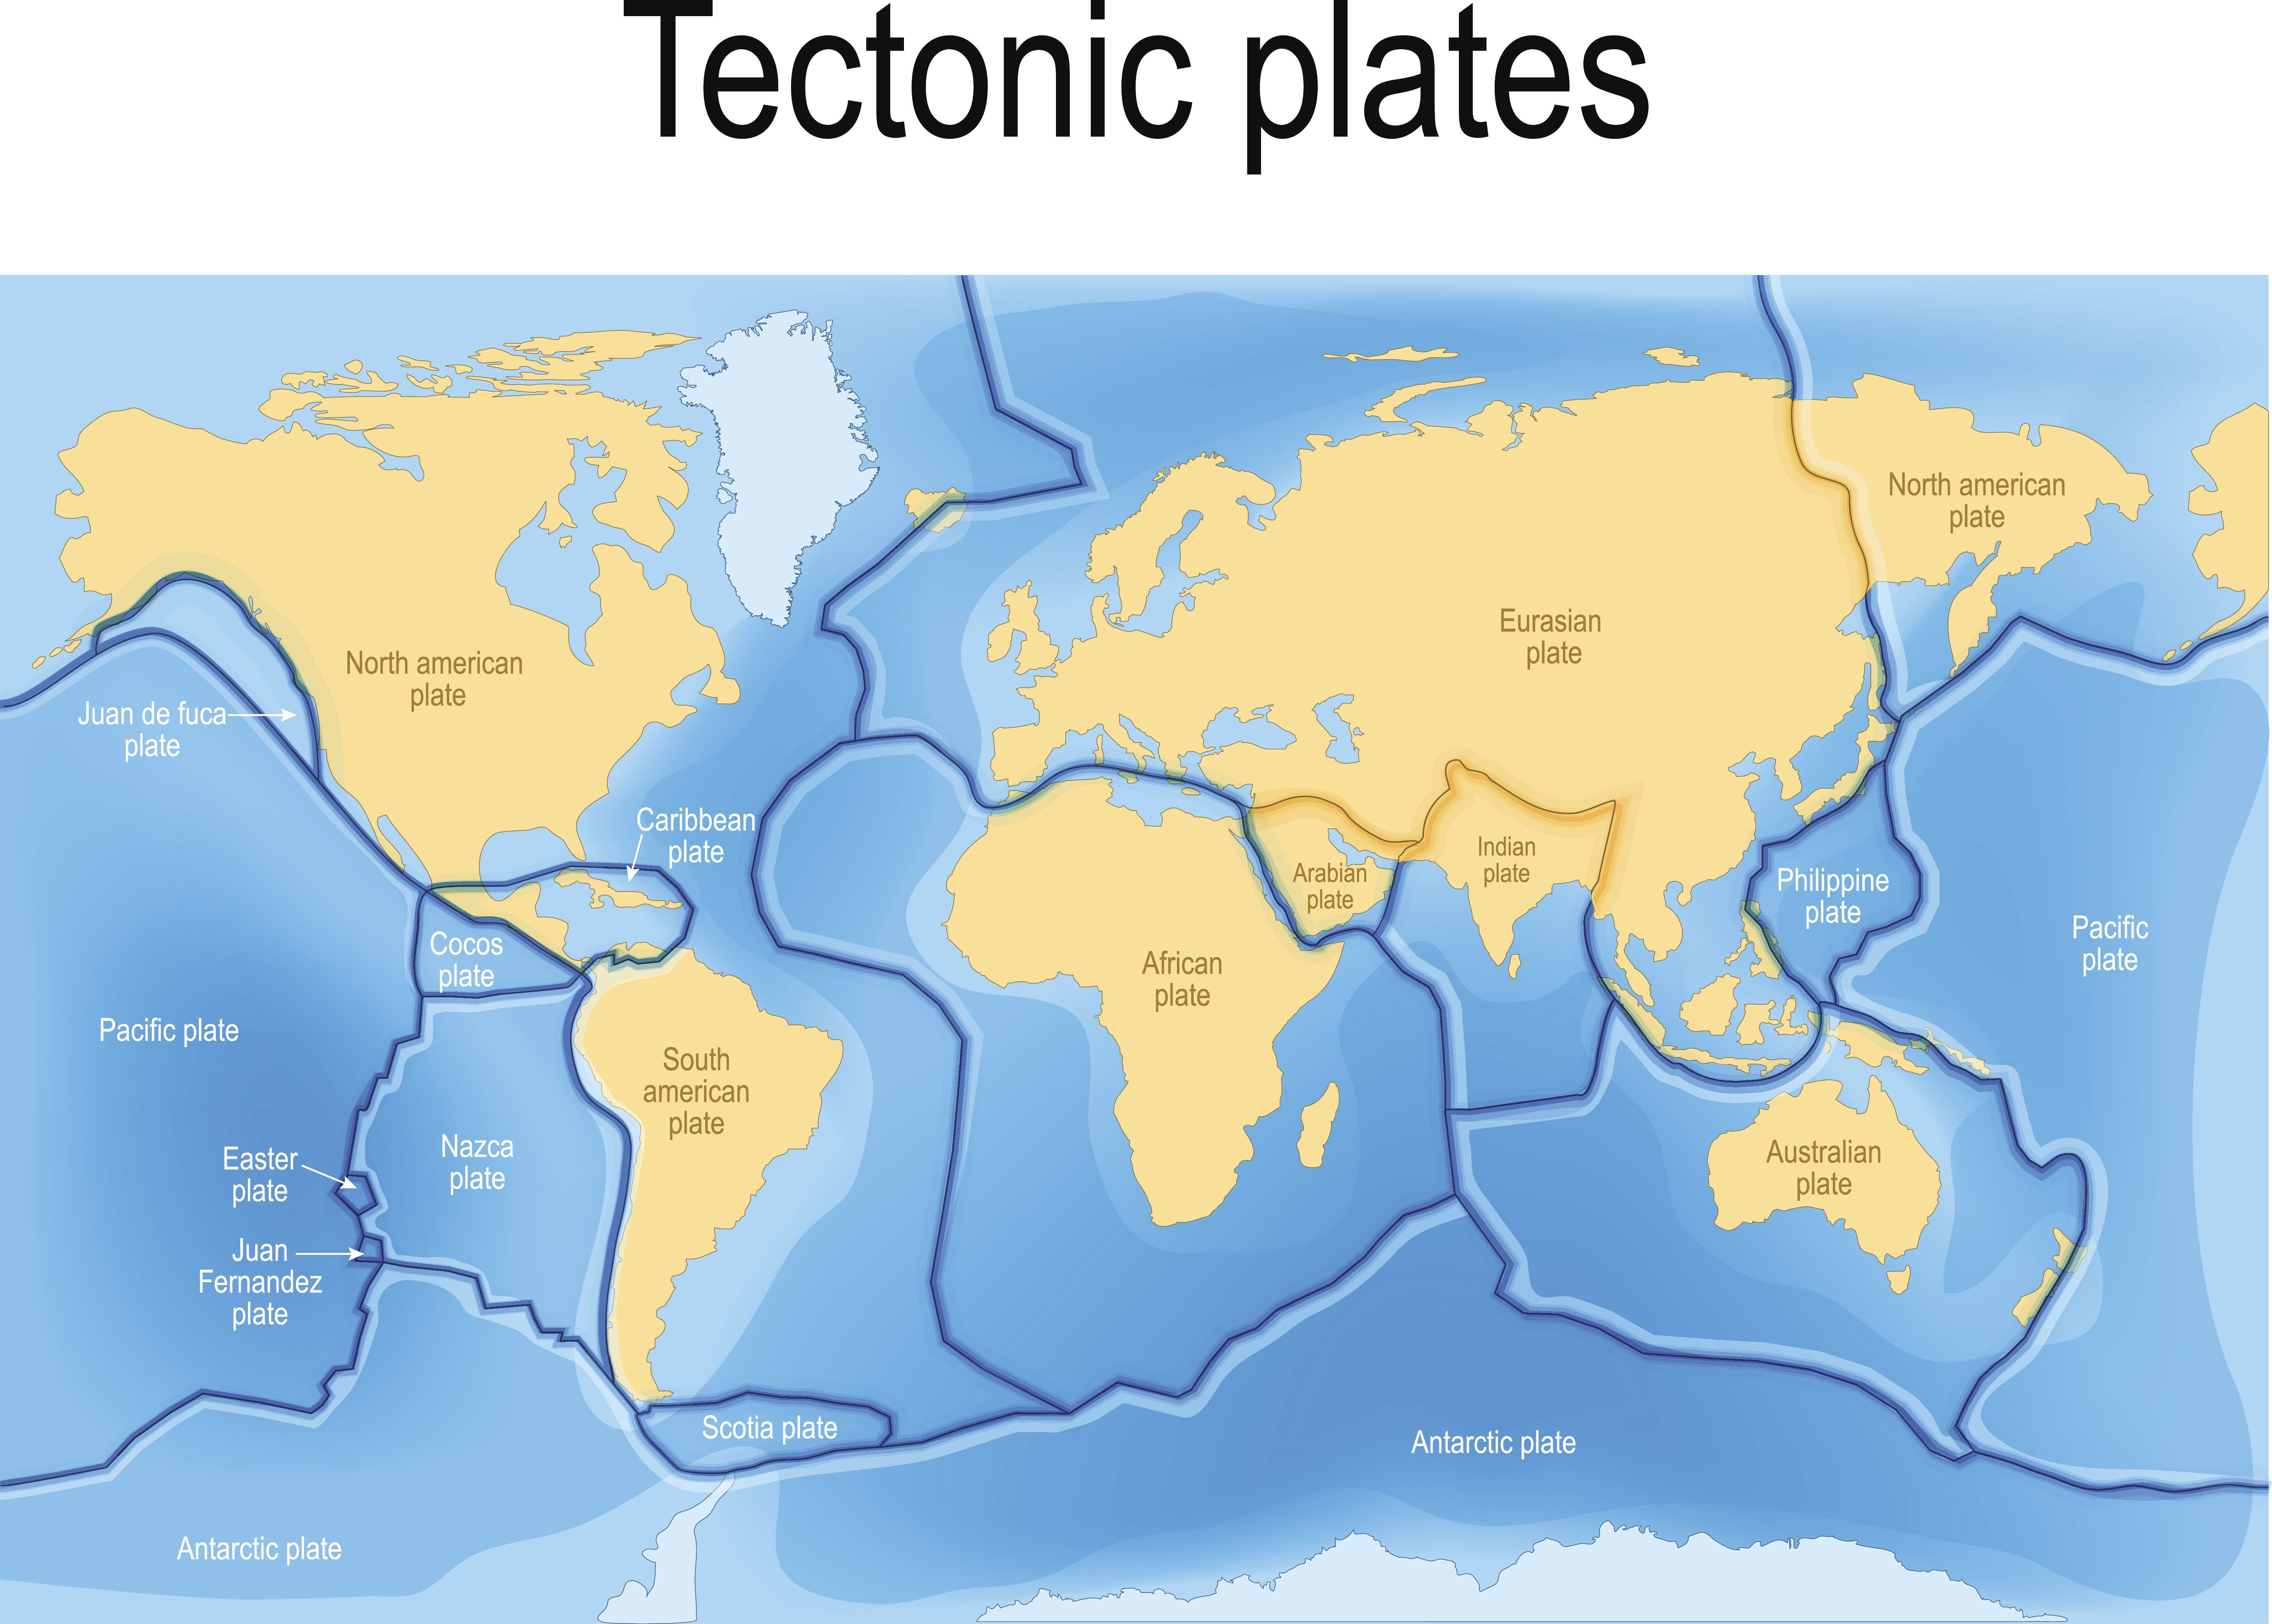 A Map Of Tectonic Plates And Their Boundaries